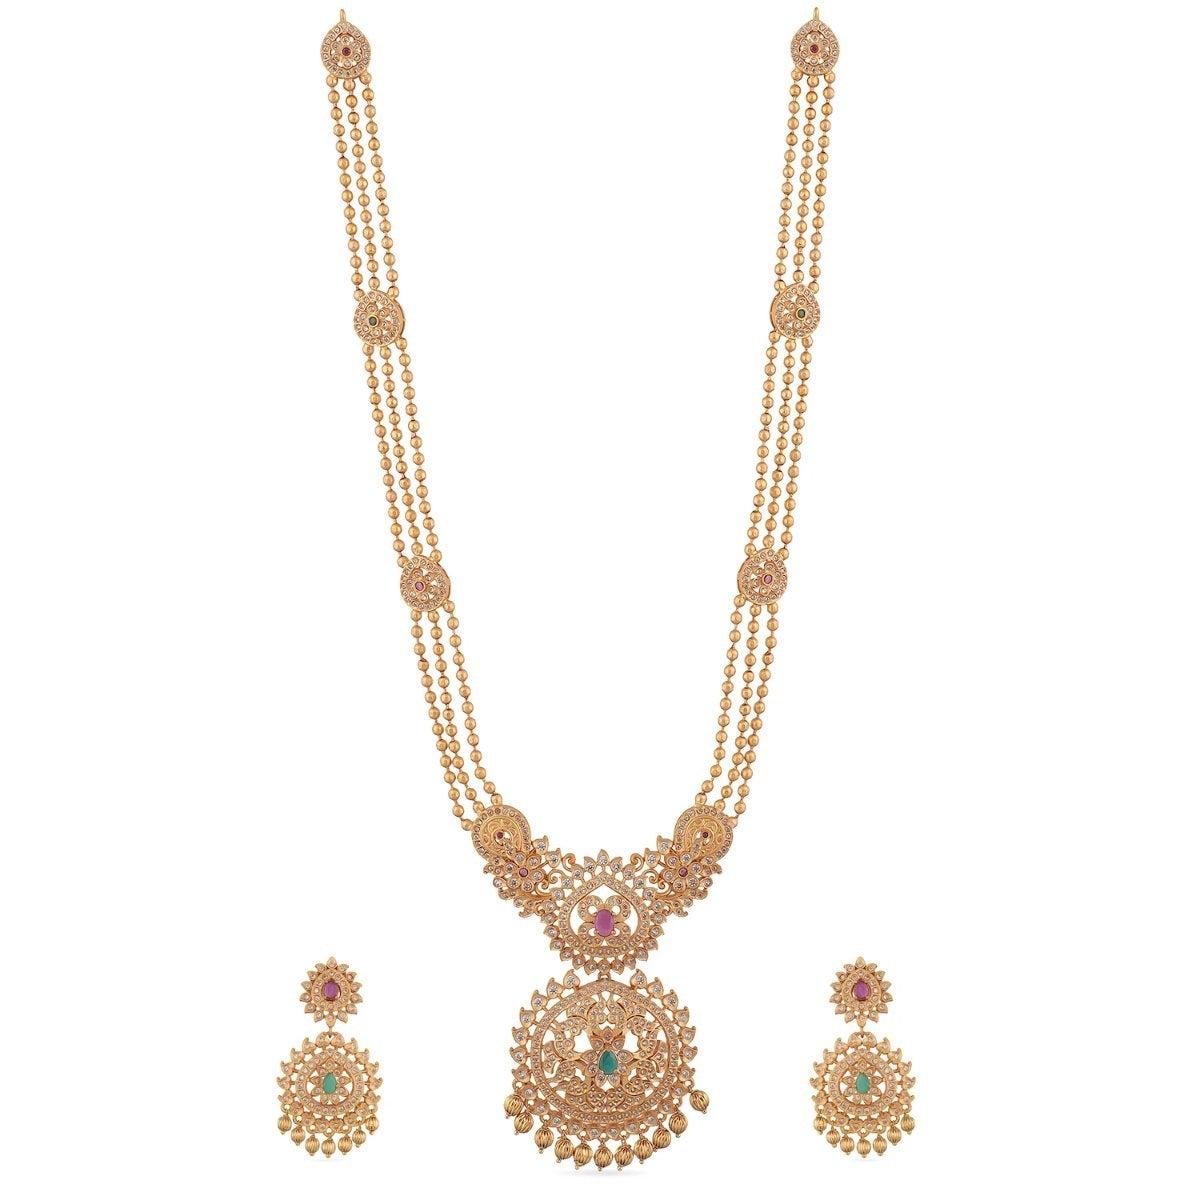 Binal Antique Long Necklace Set